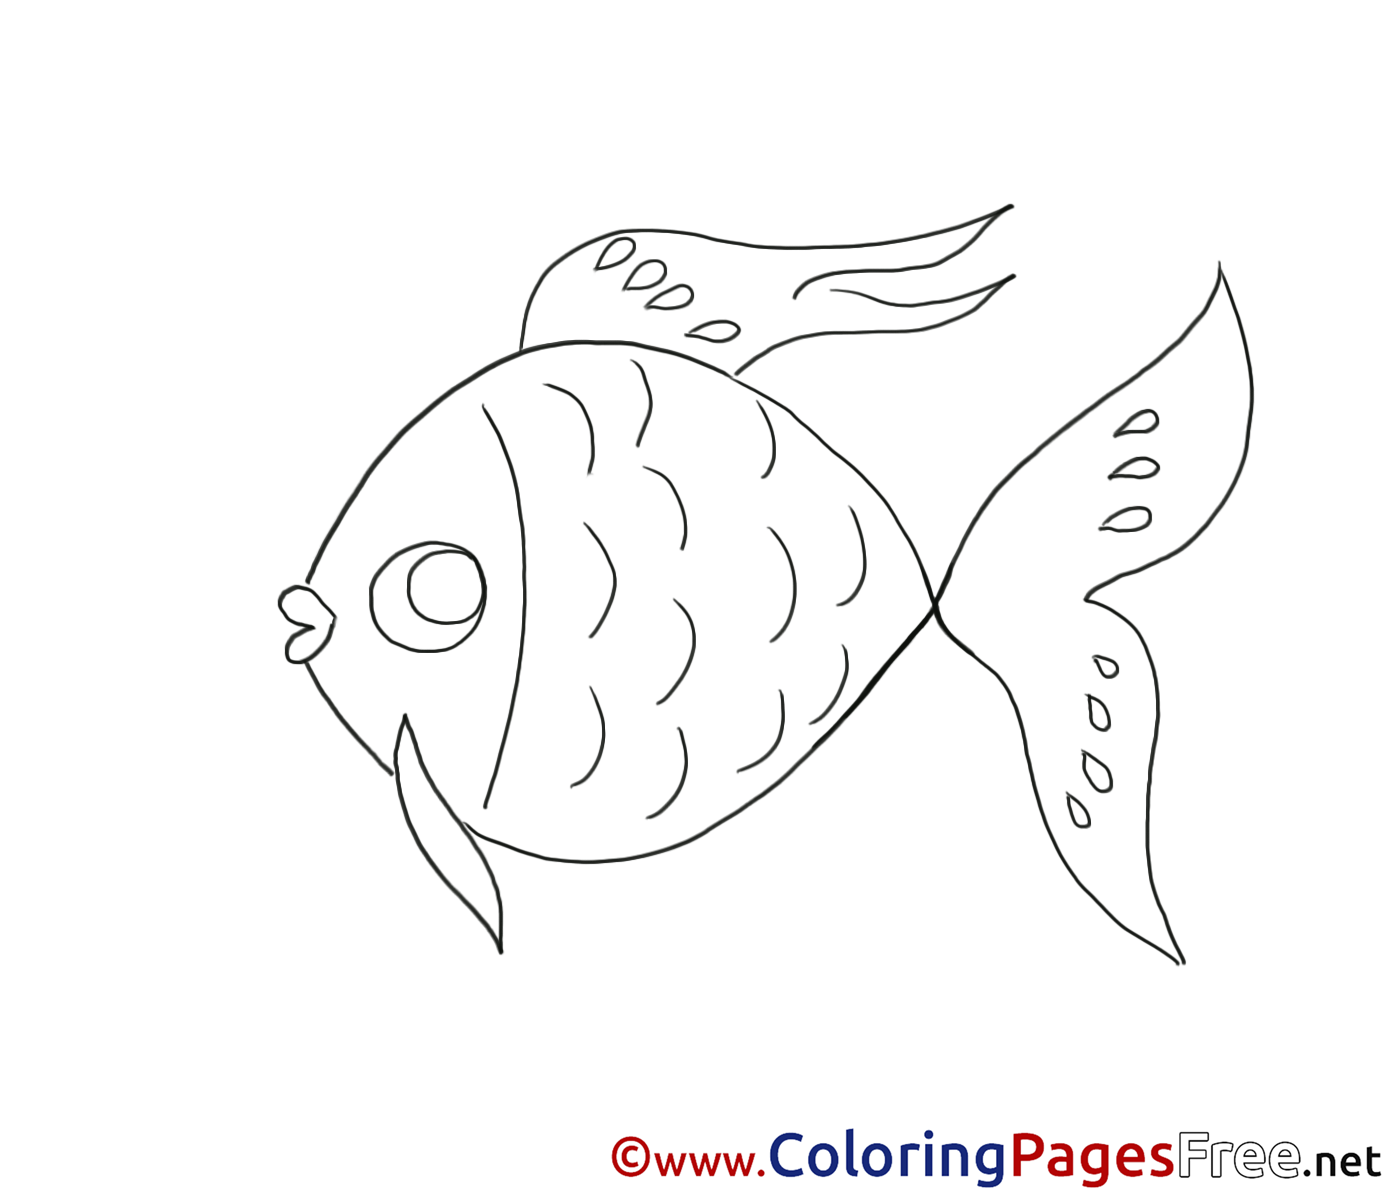 Coloring: 21 Outstanding Fish Coloring Book. Tropical Fish ... | 1200x1400